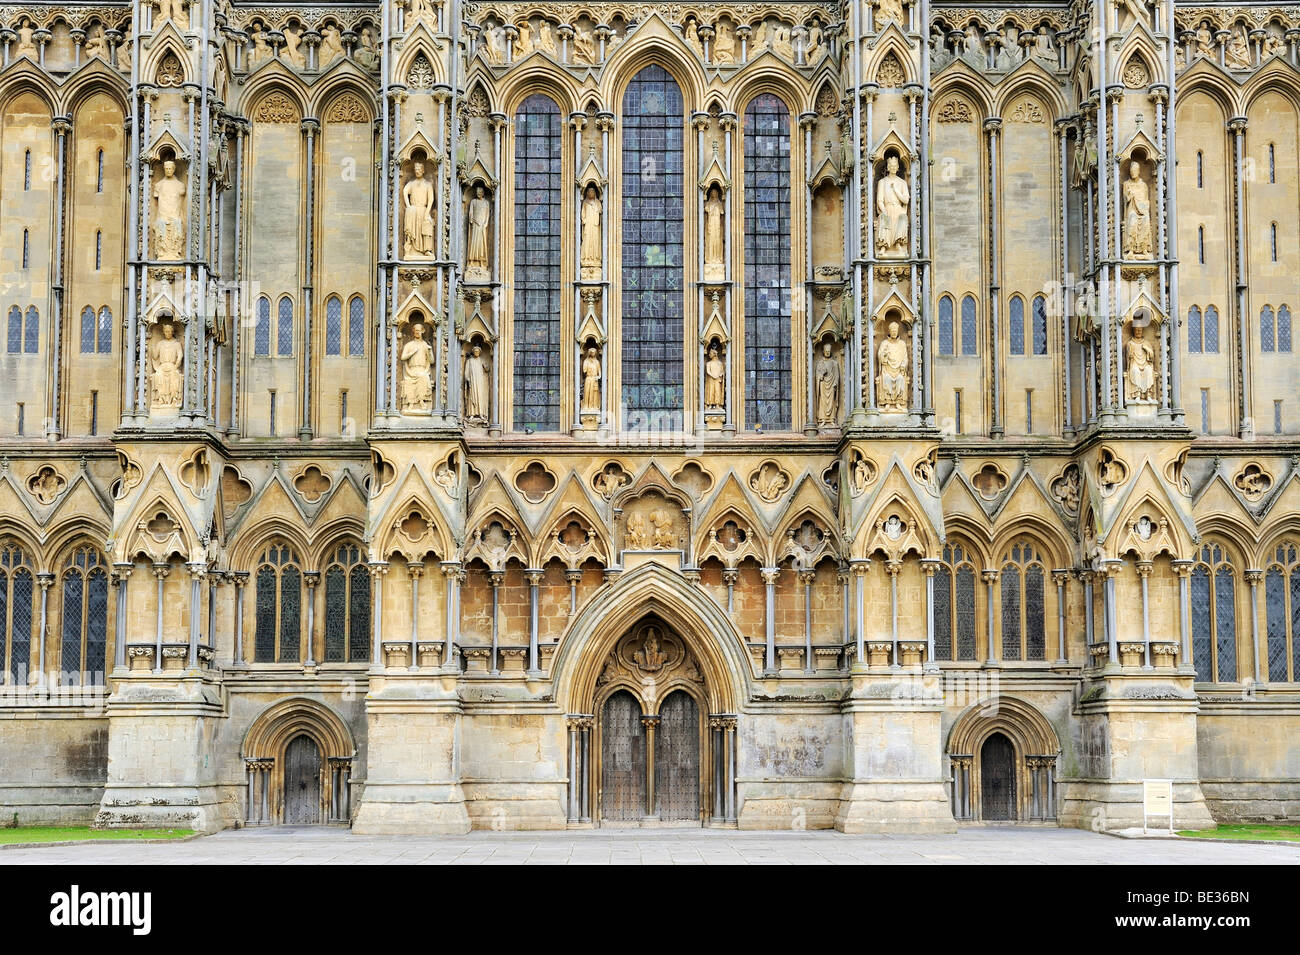 West facade of St Andrew's Cathedral, completed in 1260, Wells, Somerset County, England, United Kingdom, Europe - Stock Image